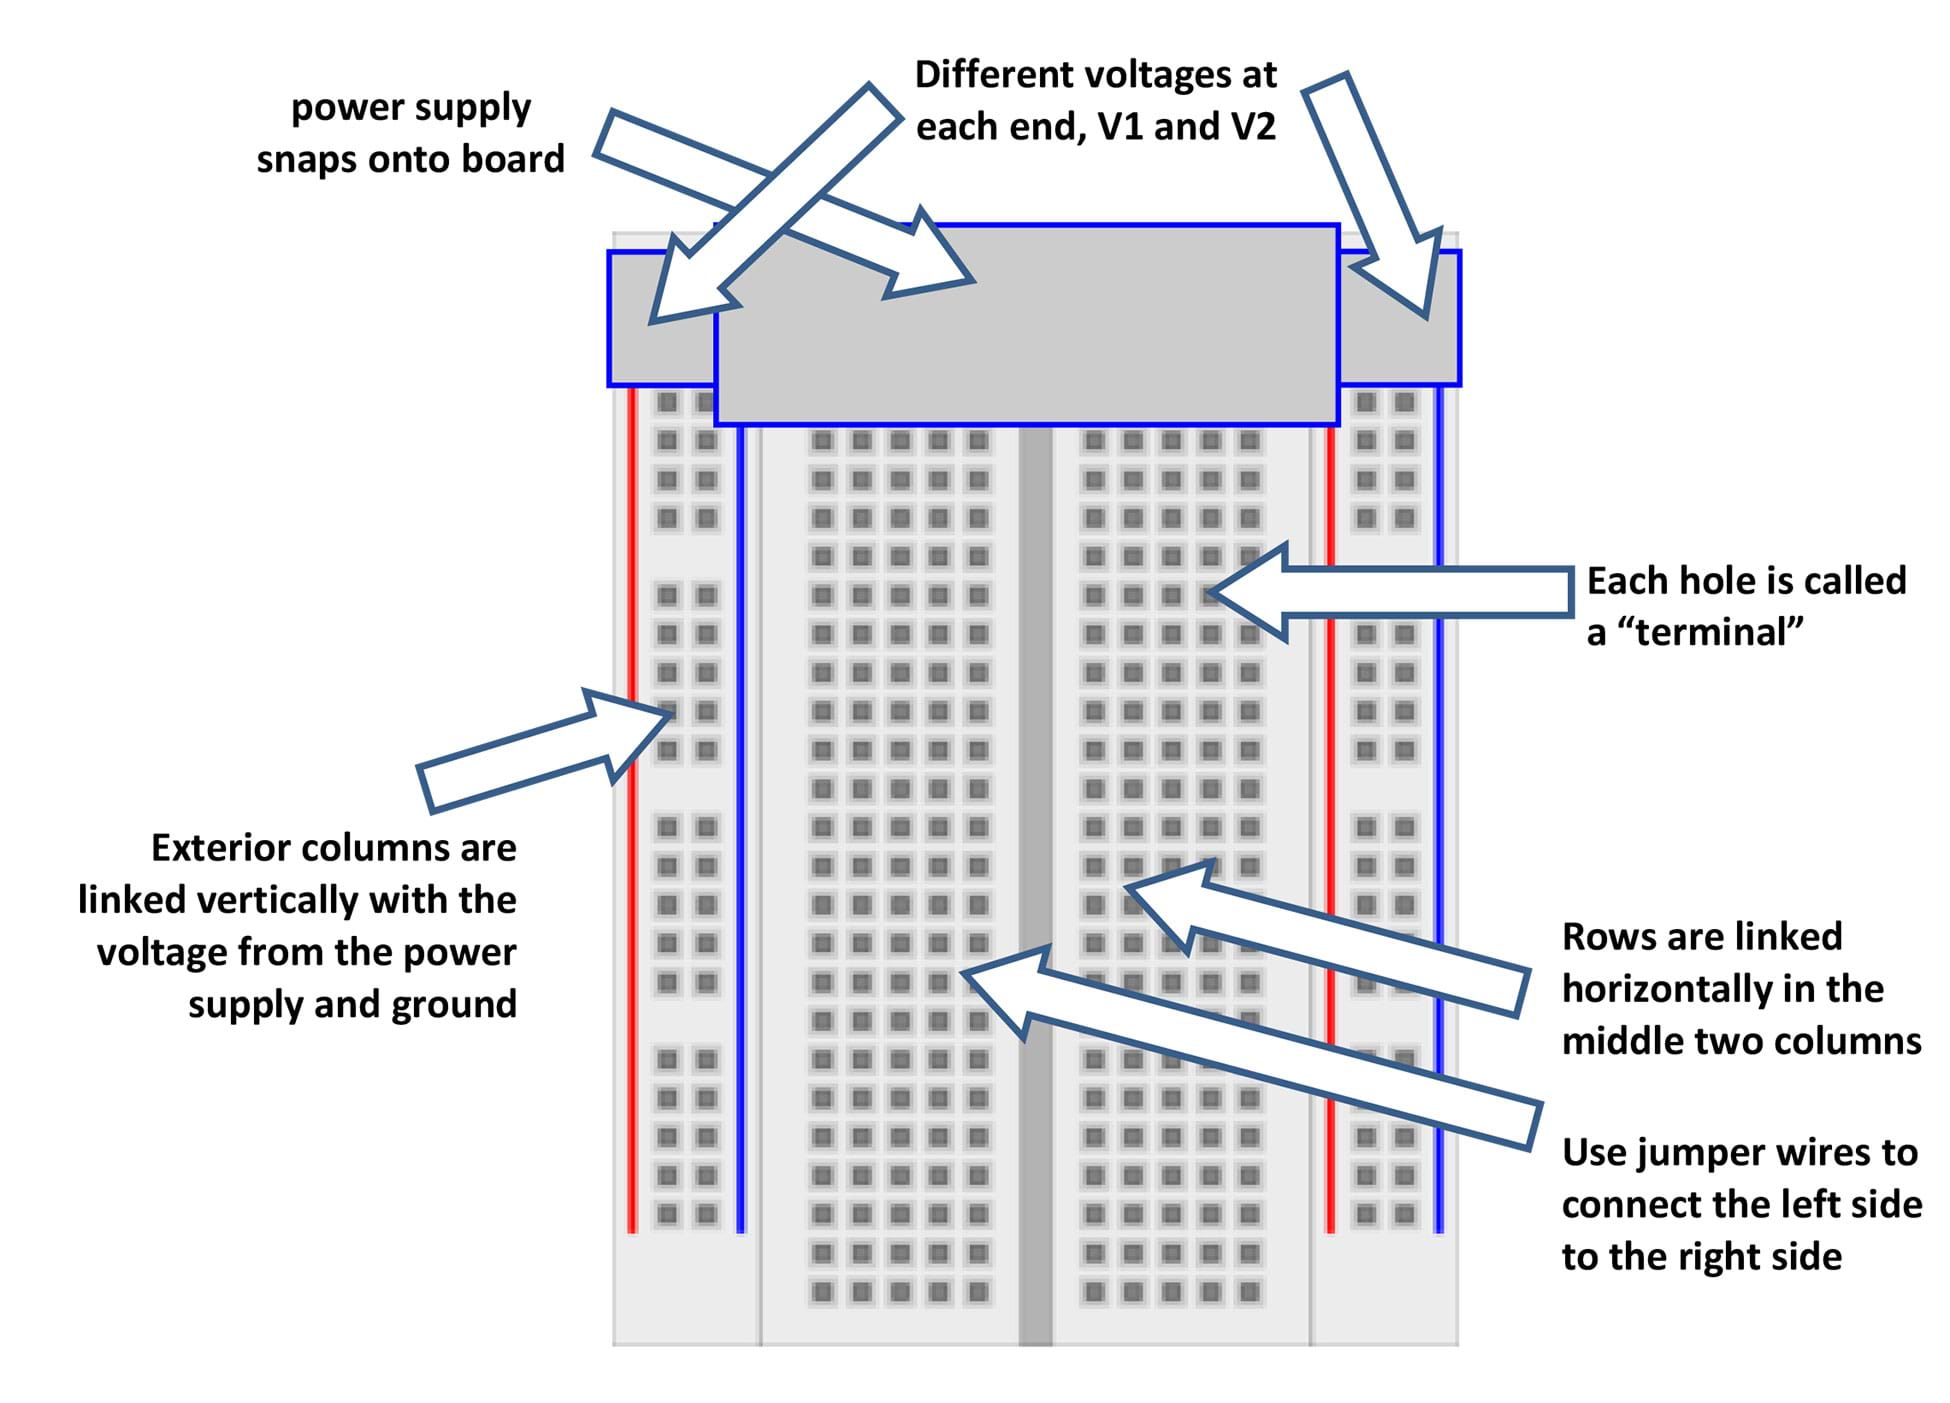 A breadboard diagram with arrows and labels: K2 power supply snaps onto the top of the breadboard; each hole is called a terminal; different voltages at each end, V1 and V2 (as in Figure 1); exterior columns are linked vertically with the voltage from the power supply and ground; rows are linked horizontally in the middle two columns—use jumper wires to connect the left side to the right side.